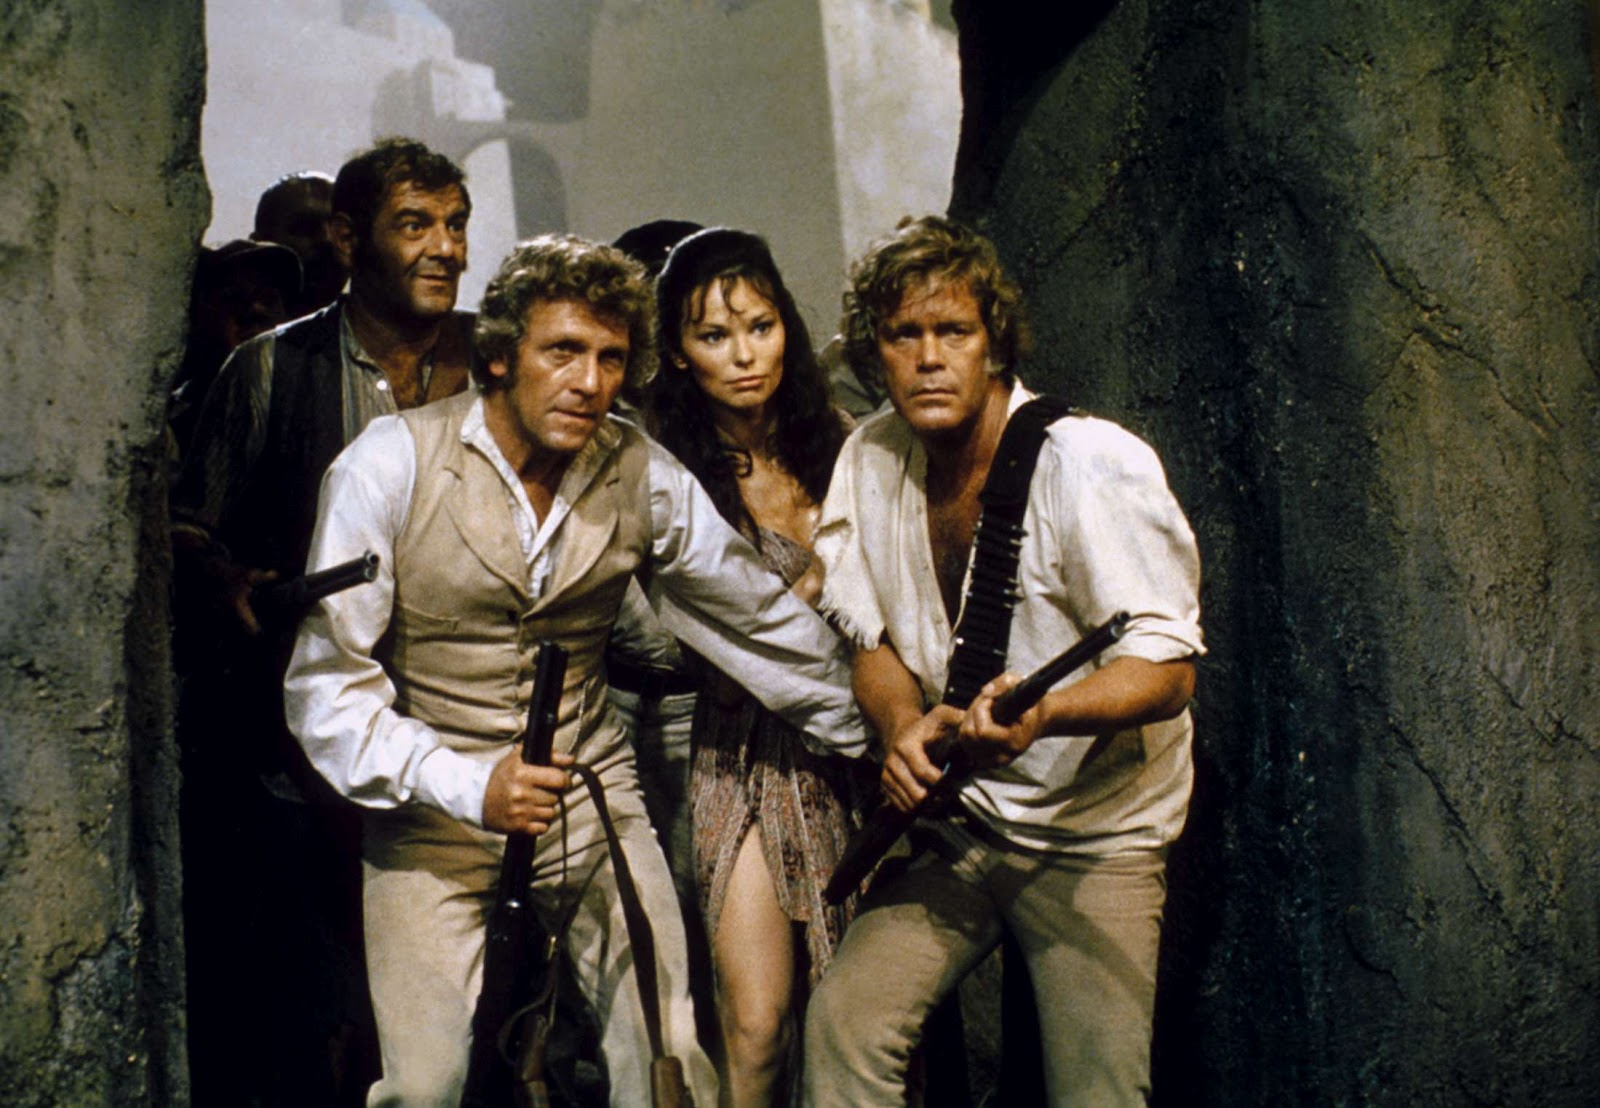 Exporers in Atlantis - Hal Galili, Peter Gilmore, Lea Brodie, Doug McClure in Warlords of Atlantis (1978)